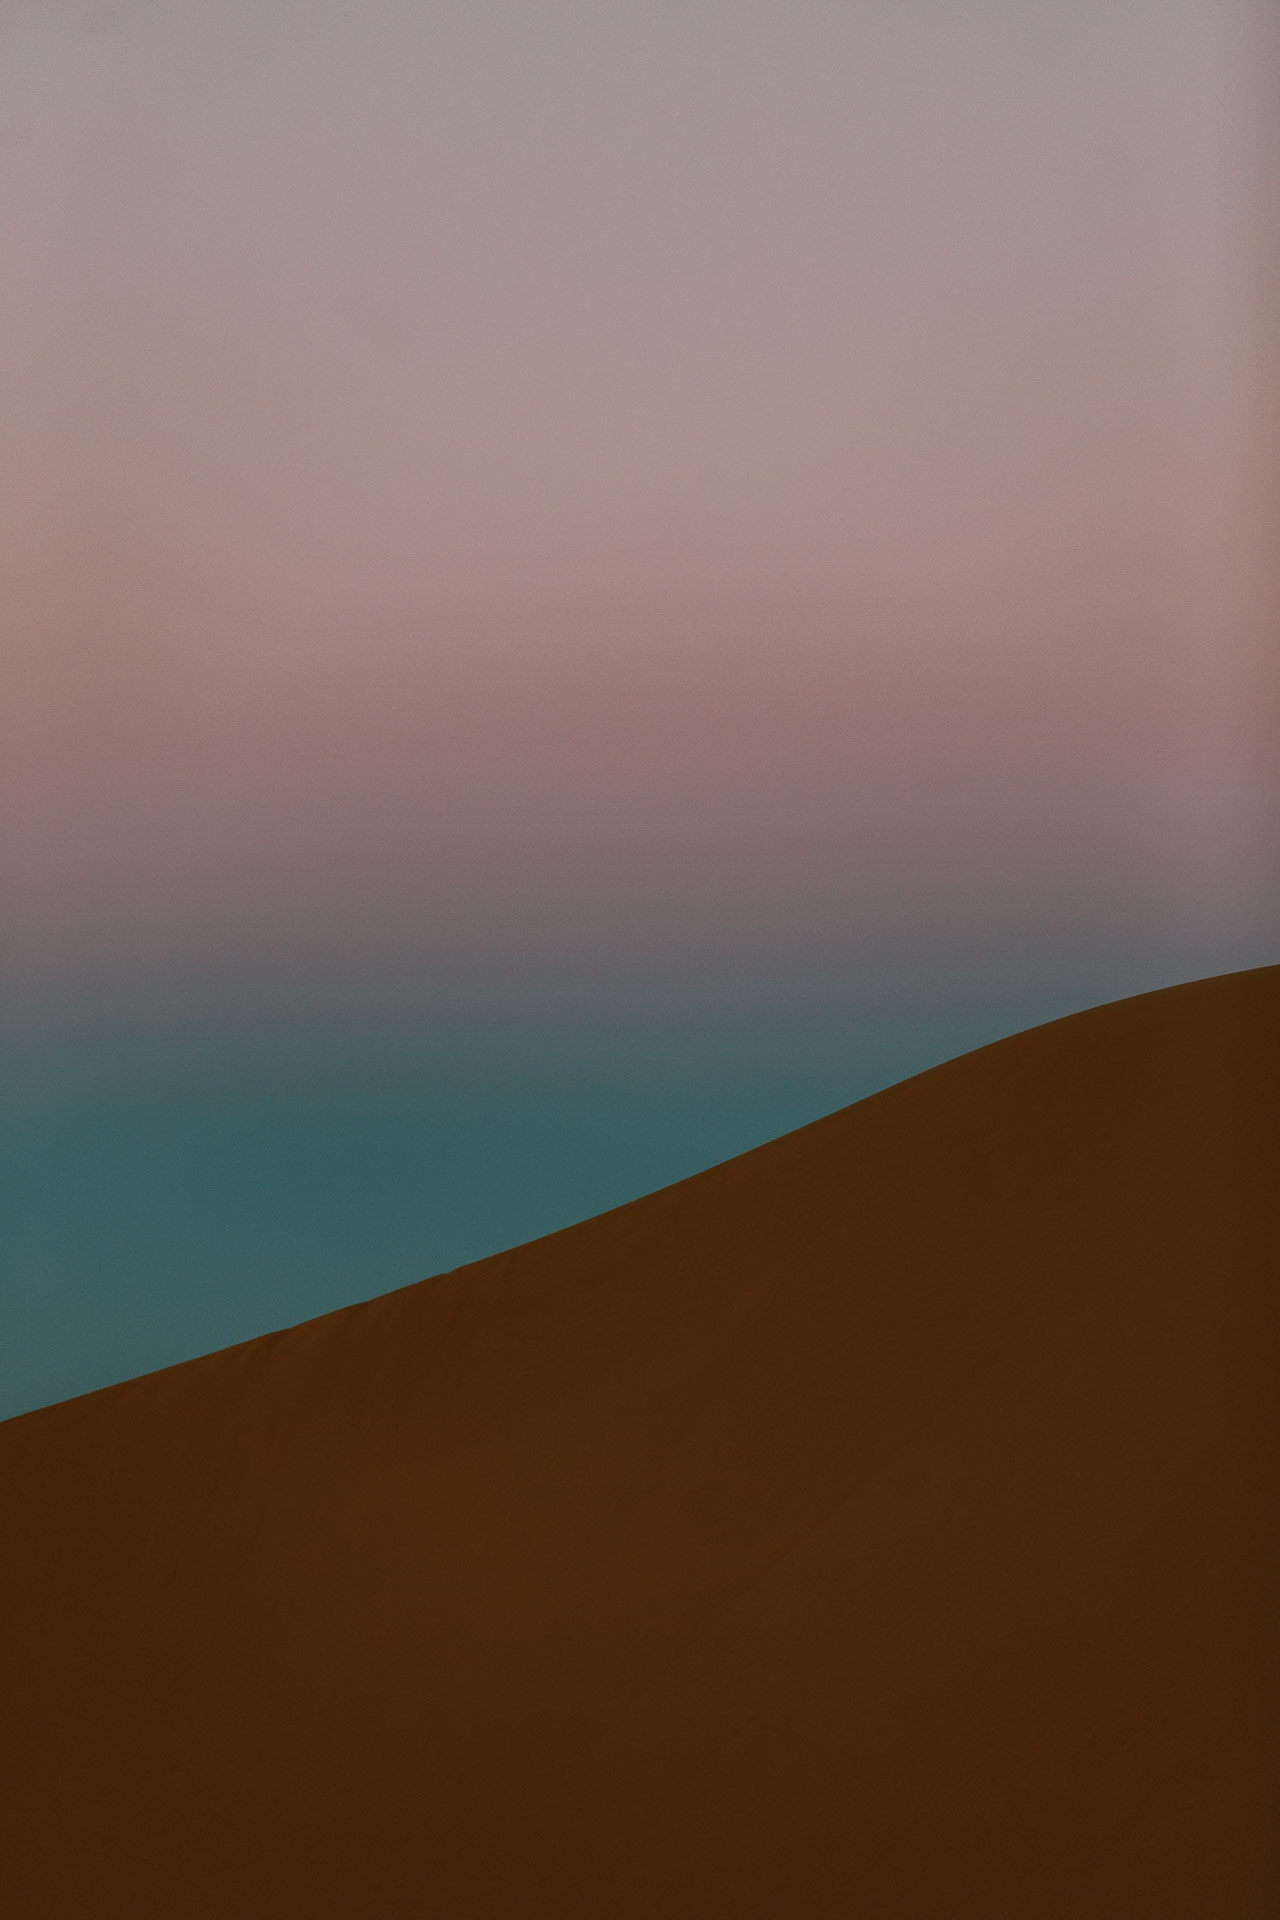 I found inspiration in the minimalist landscape of the desert.